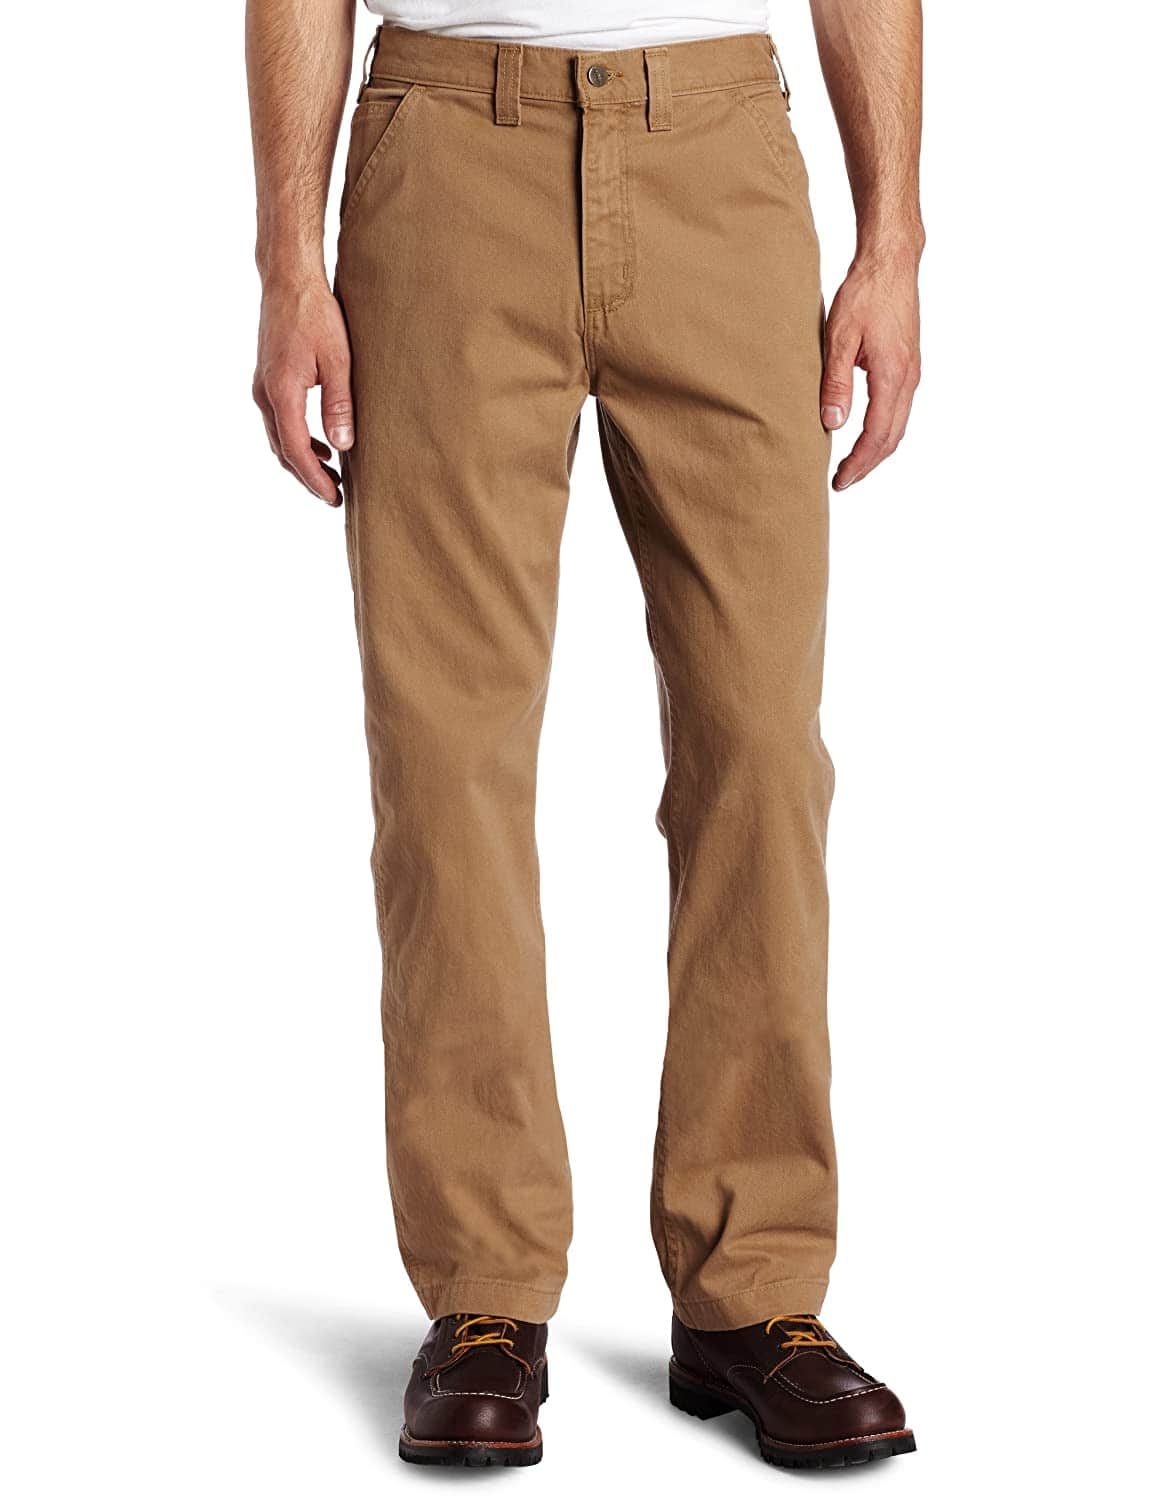 Carhartt Men's Relaxed Fit Washed Twill Dungaree Pant   29.99 $29.99